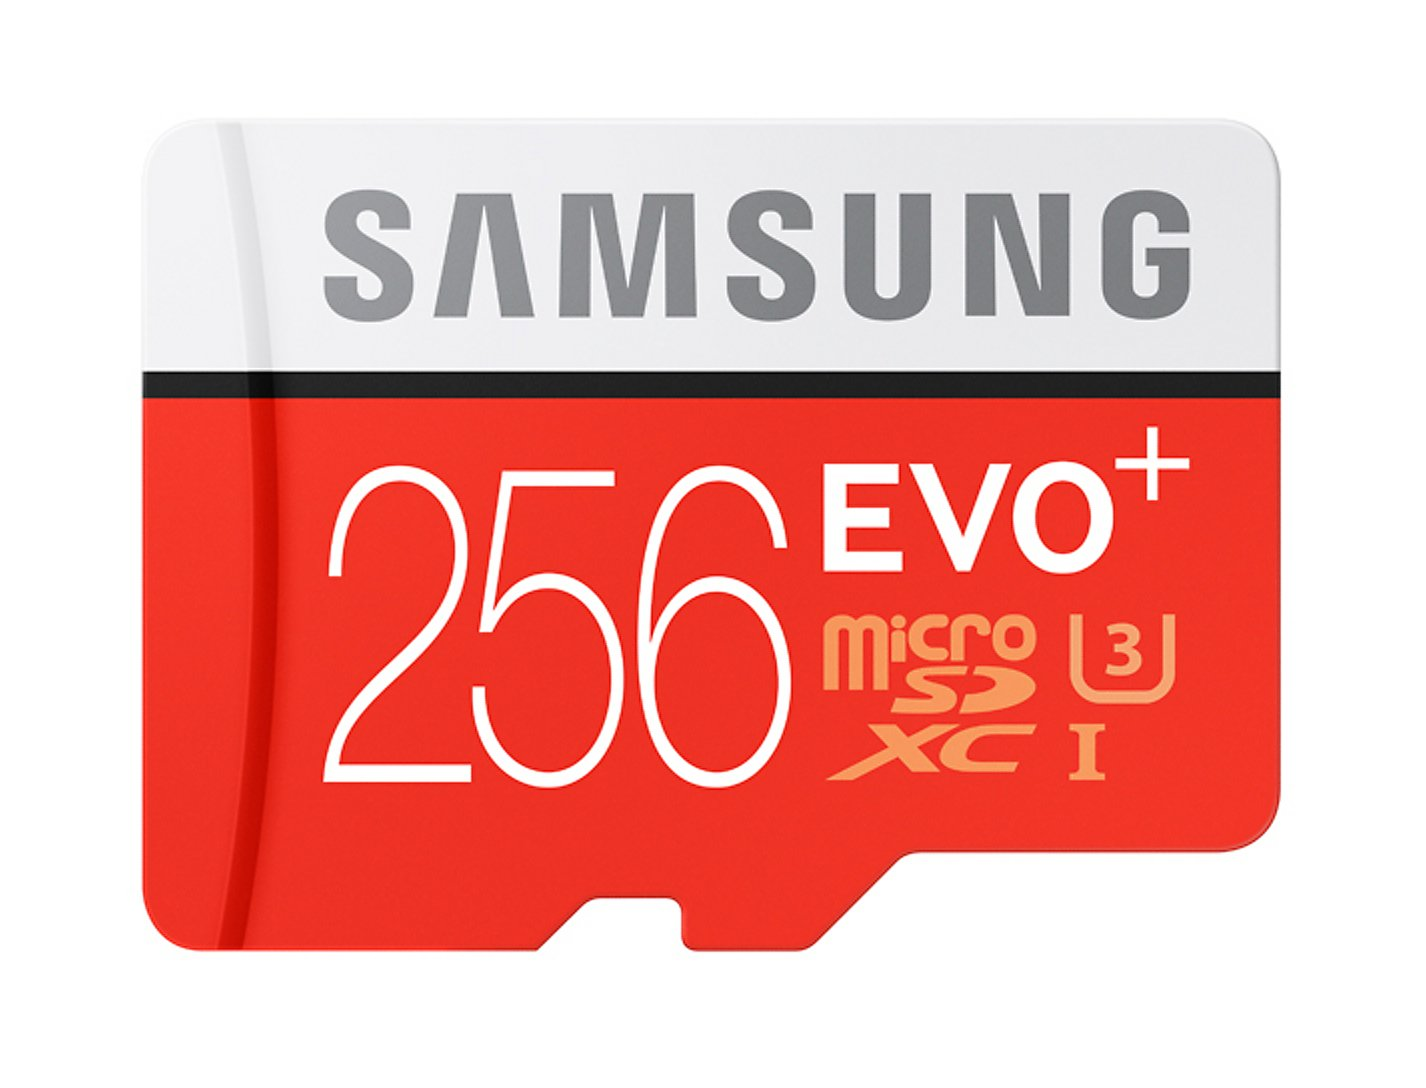 Samsung EVO+ 256GB UHS-I microSDXC U3 Memory Card with Adapter (MB-MC256DA/AM)